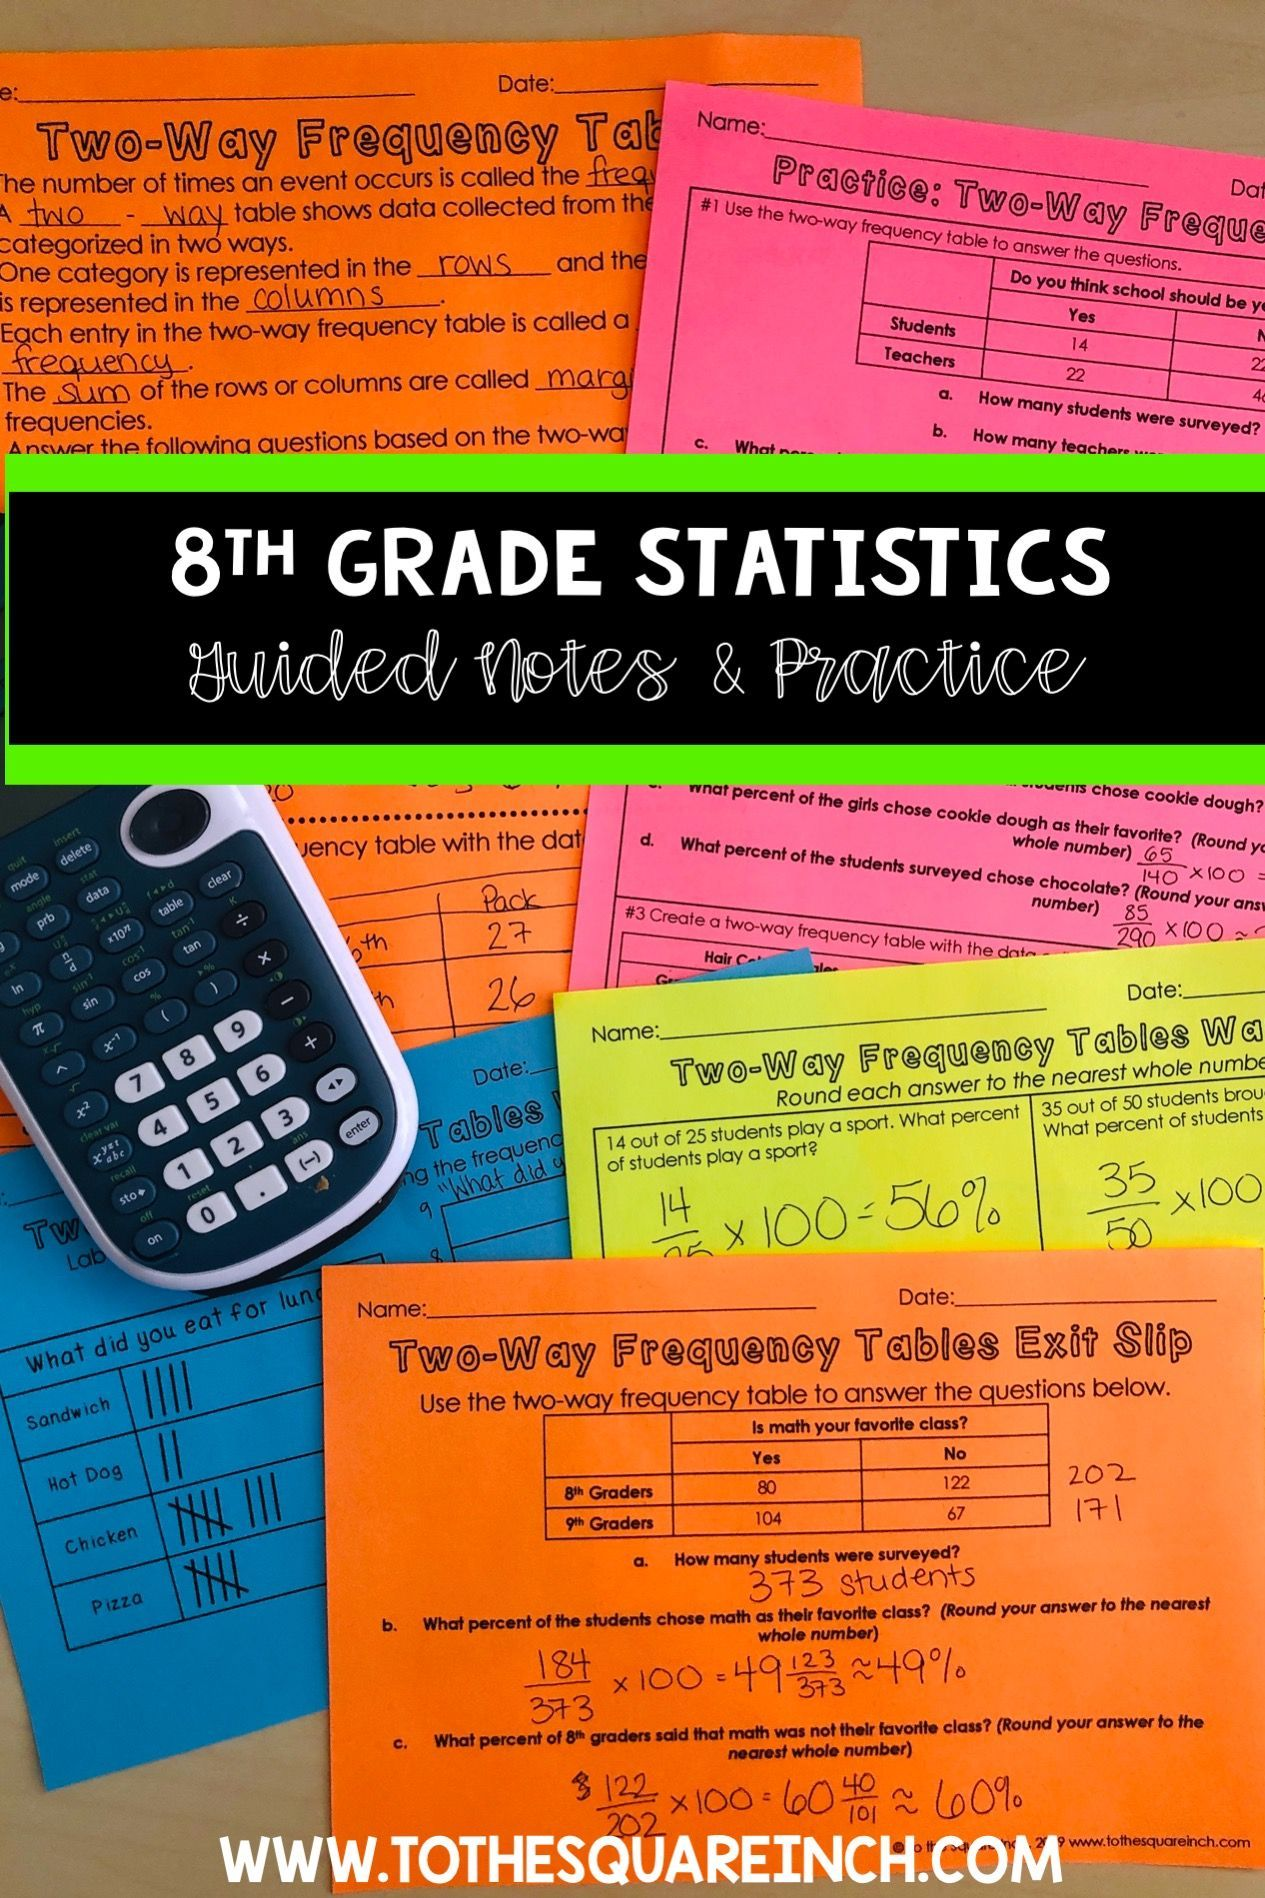 Scatter Plots Lines Of Fit And Two Way Frequency Tables Guided Notes For 8th Grade Math Common Core Statisti Math Guided Notes Frequency Table 8th Grade Math [ 1898 x 1265 Pixel ]